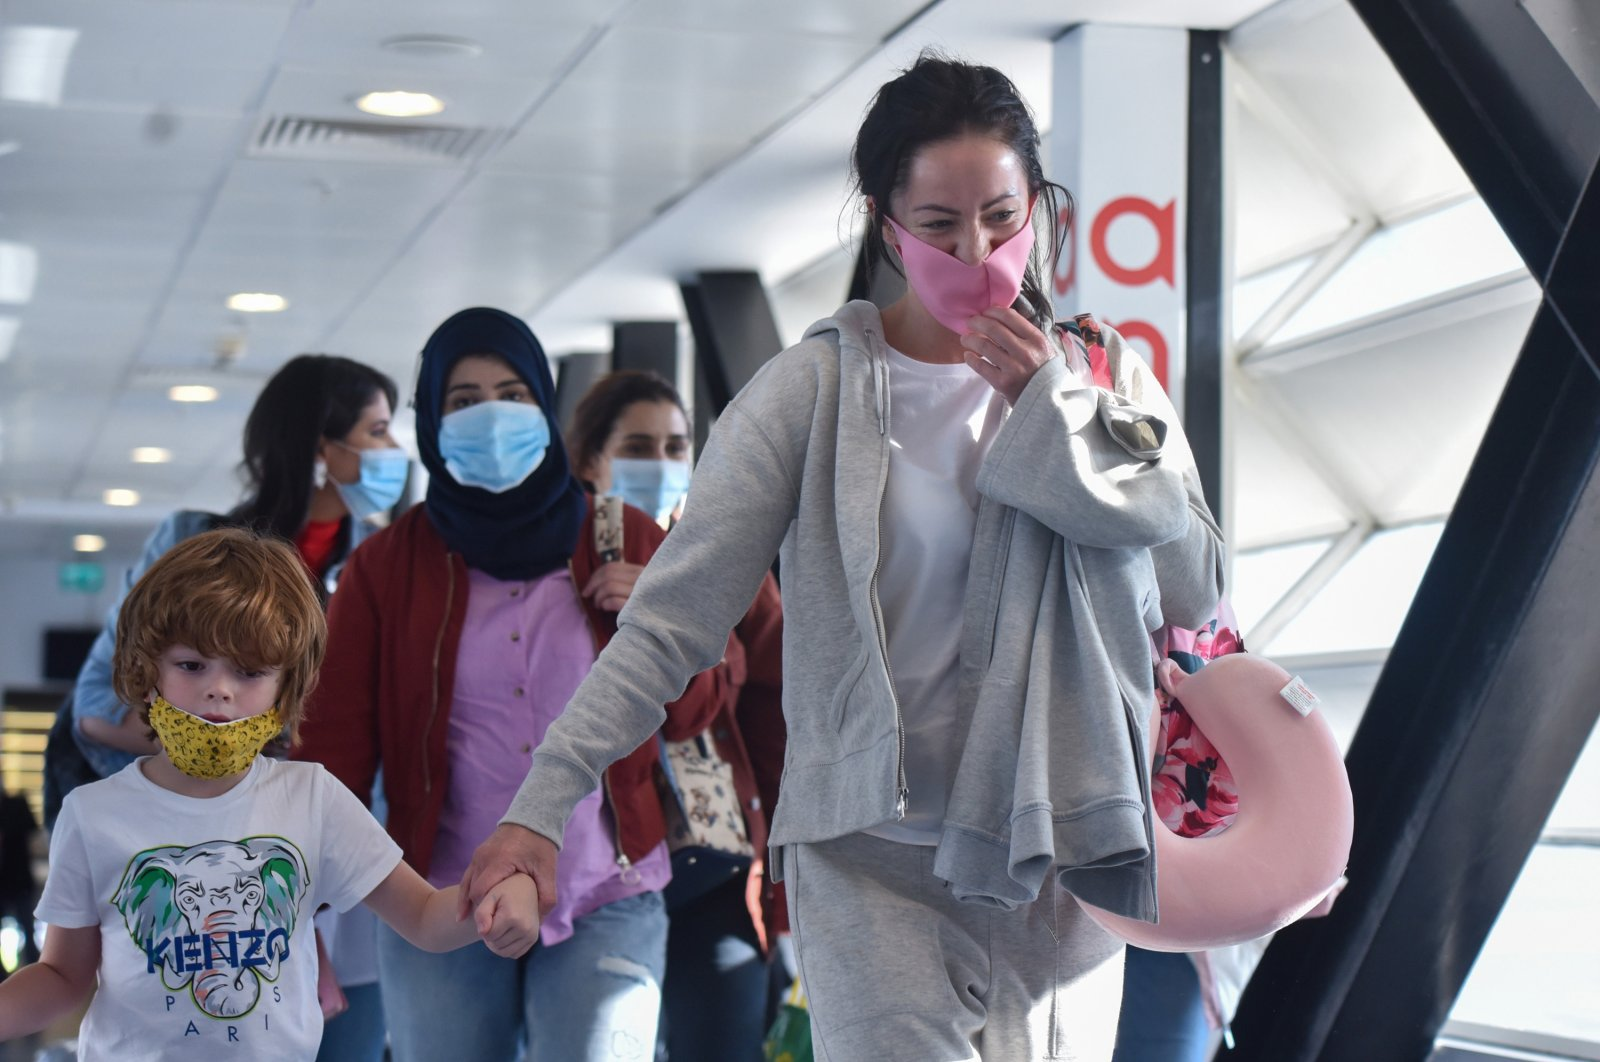 This file photo shows people arriving at an airport in the southern province of Antalya, Turkey. (DHA Photo)